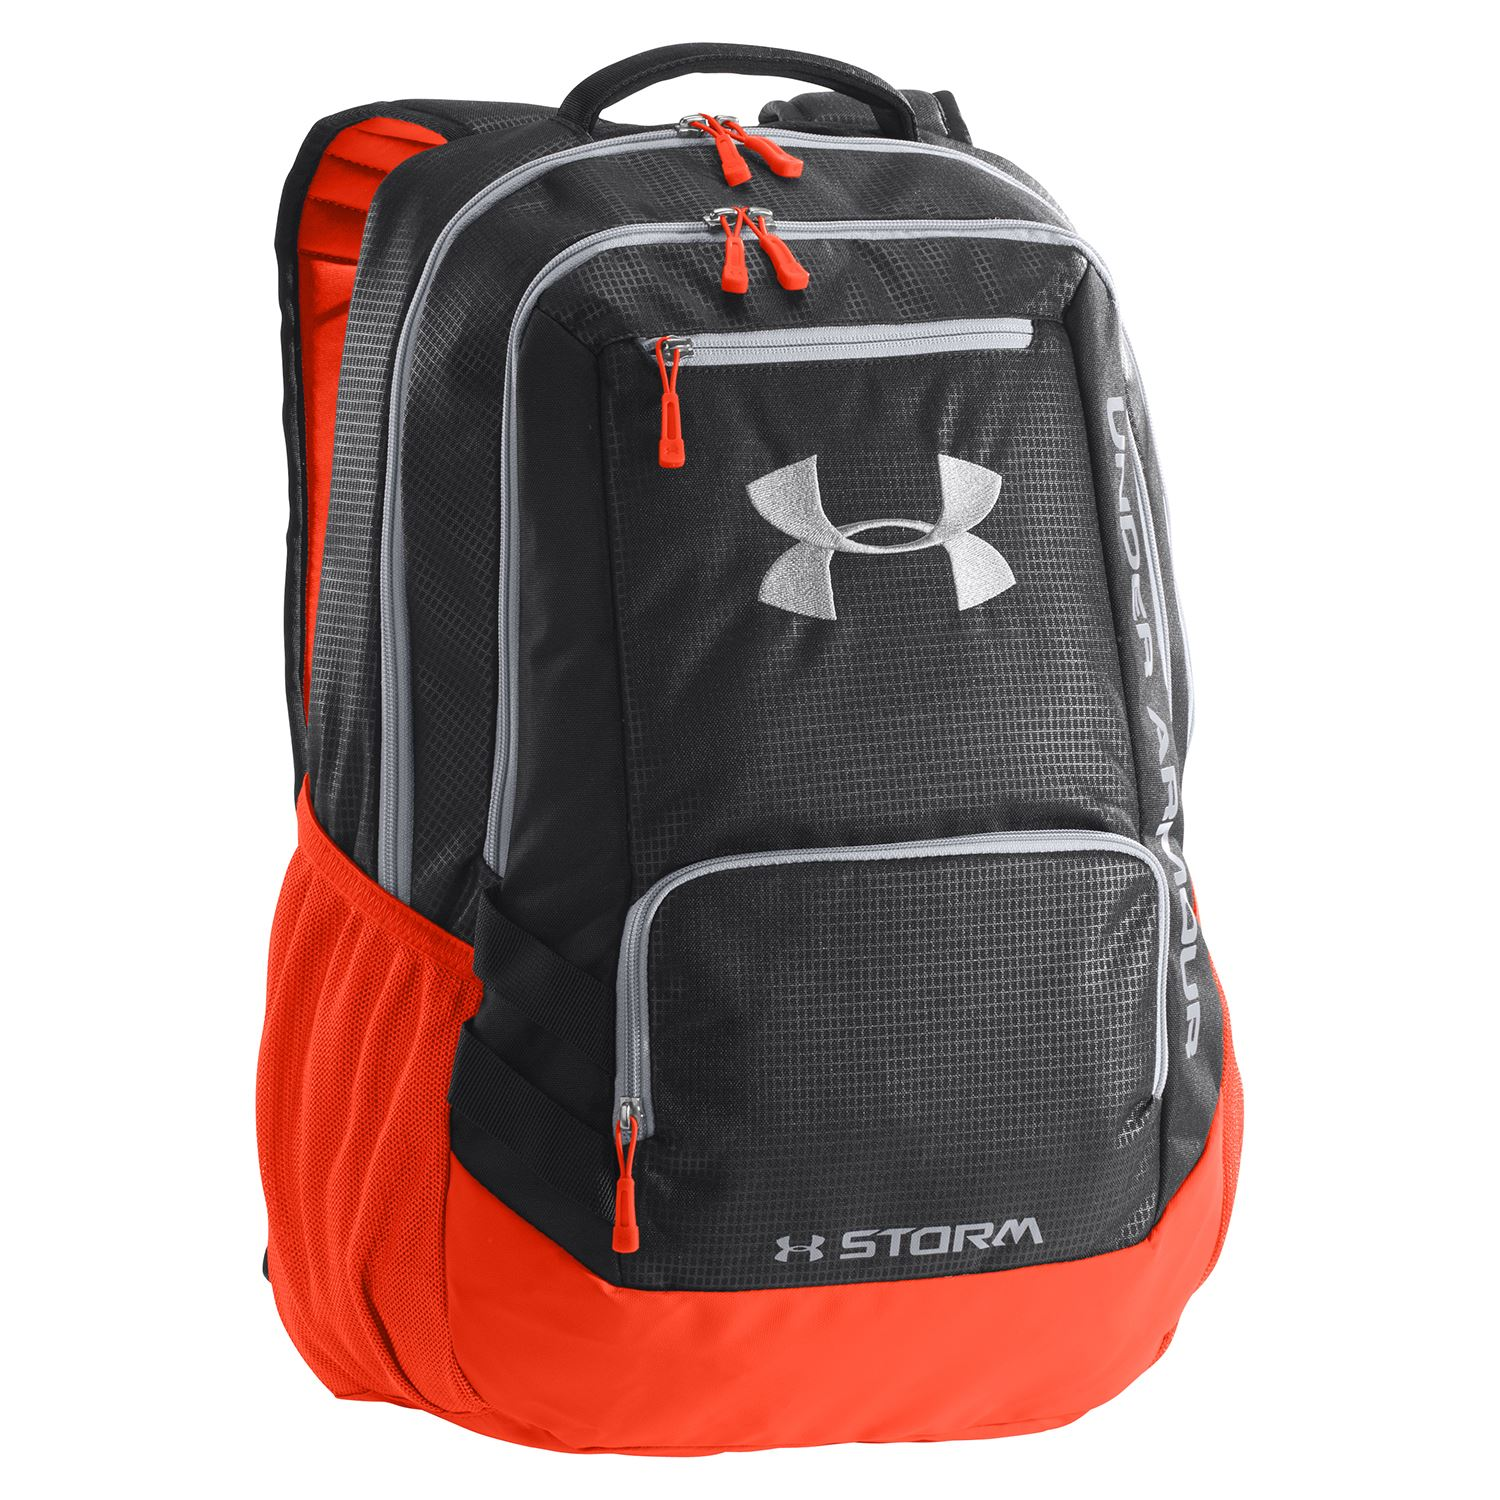 Gym Bag And Backpack: 2014 Under Armour Hustle Storm Funky Backpack Gym Bag